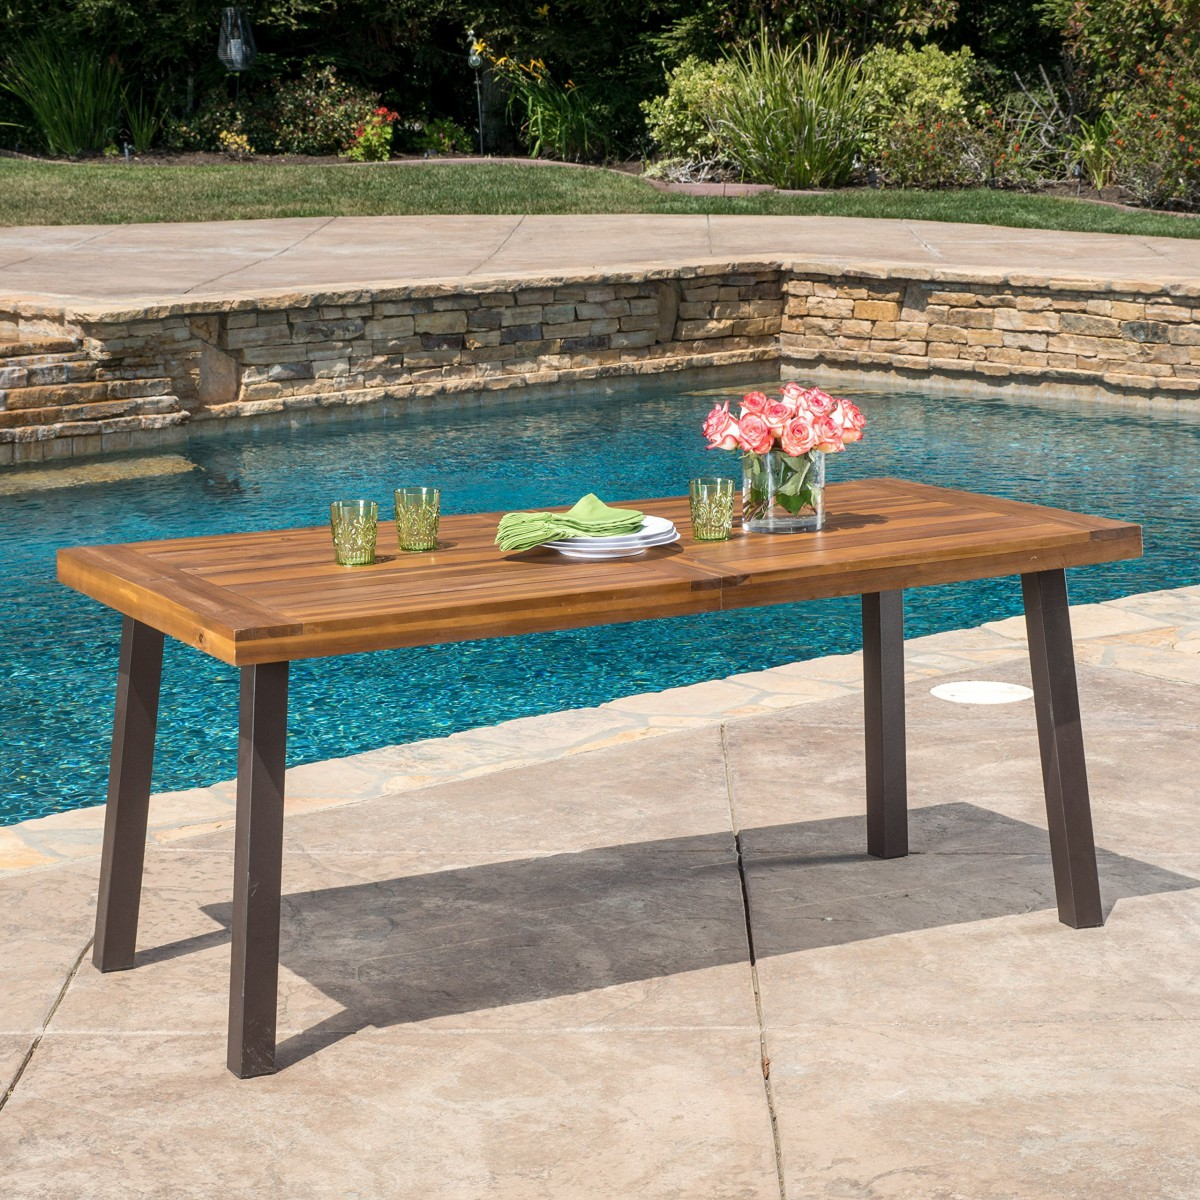 Delgado piece outdoor dining set with wood table and